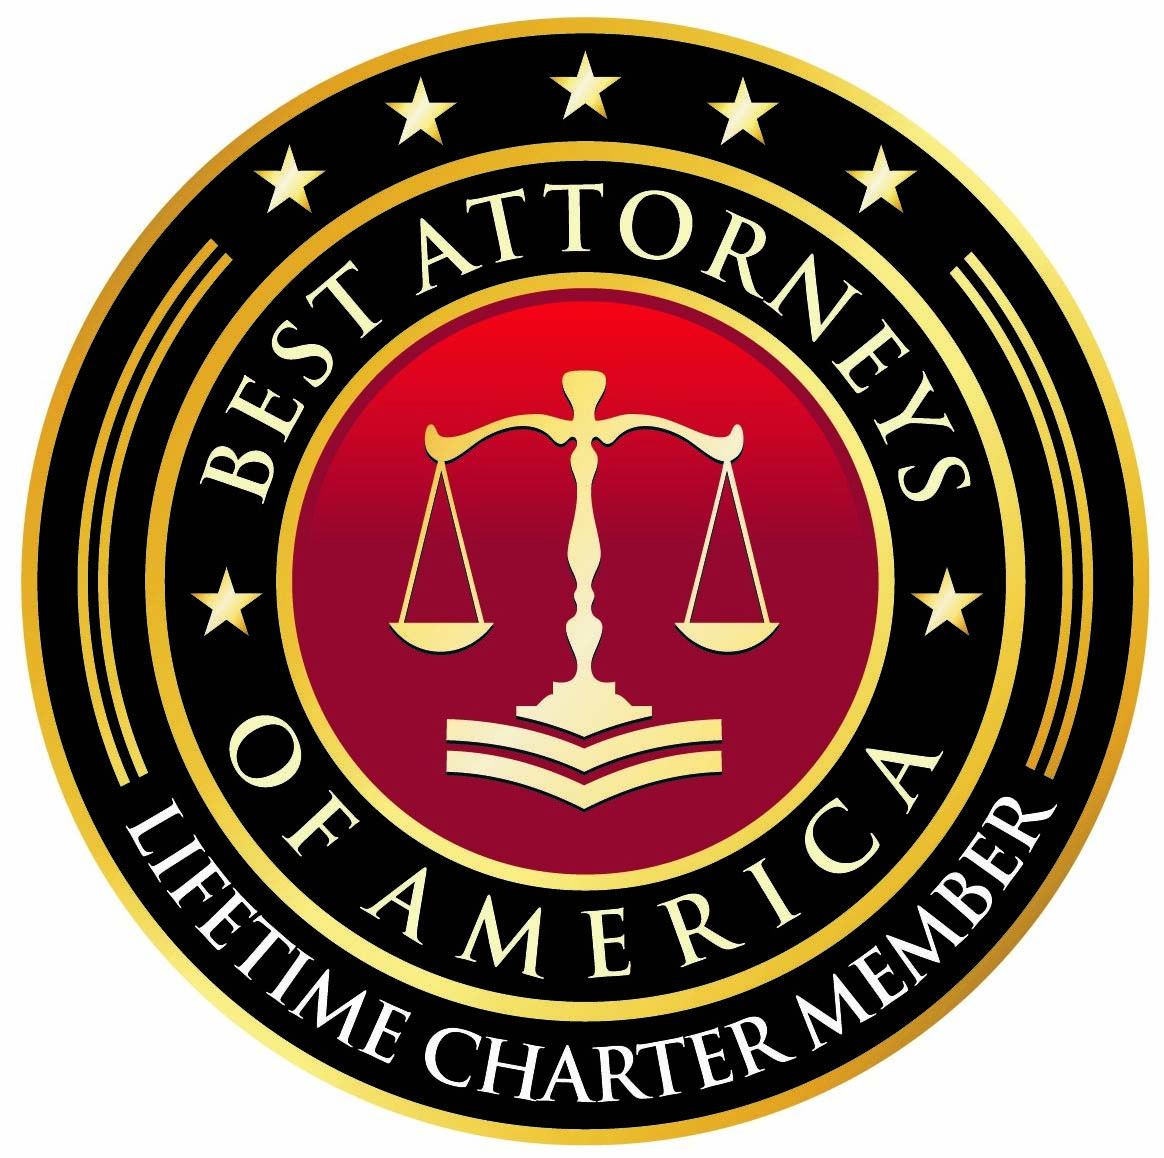 Best Attorneys in America - Life Charter Member